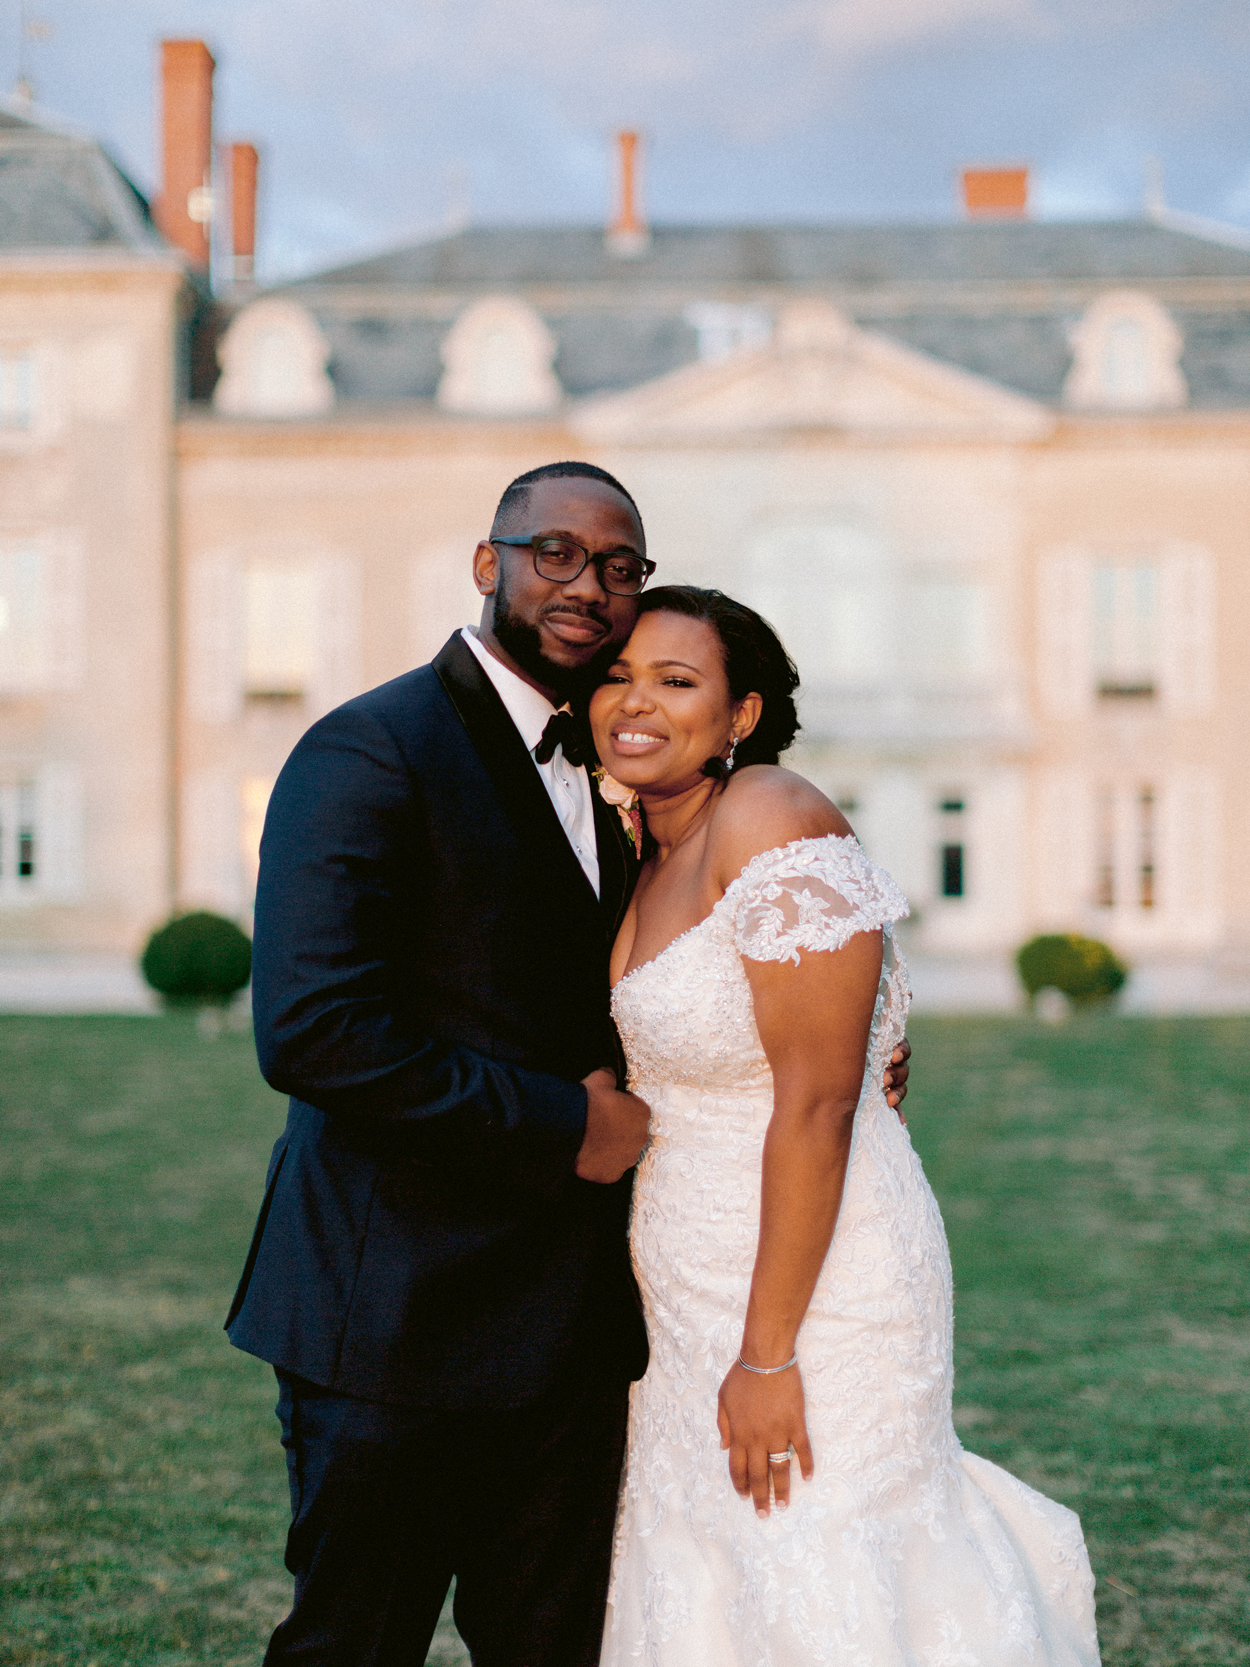 bride and groom hold each other during portrait photo